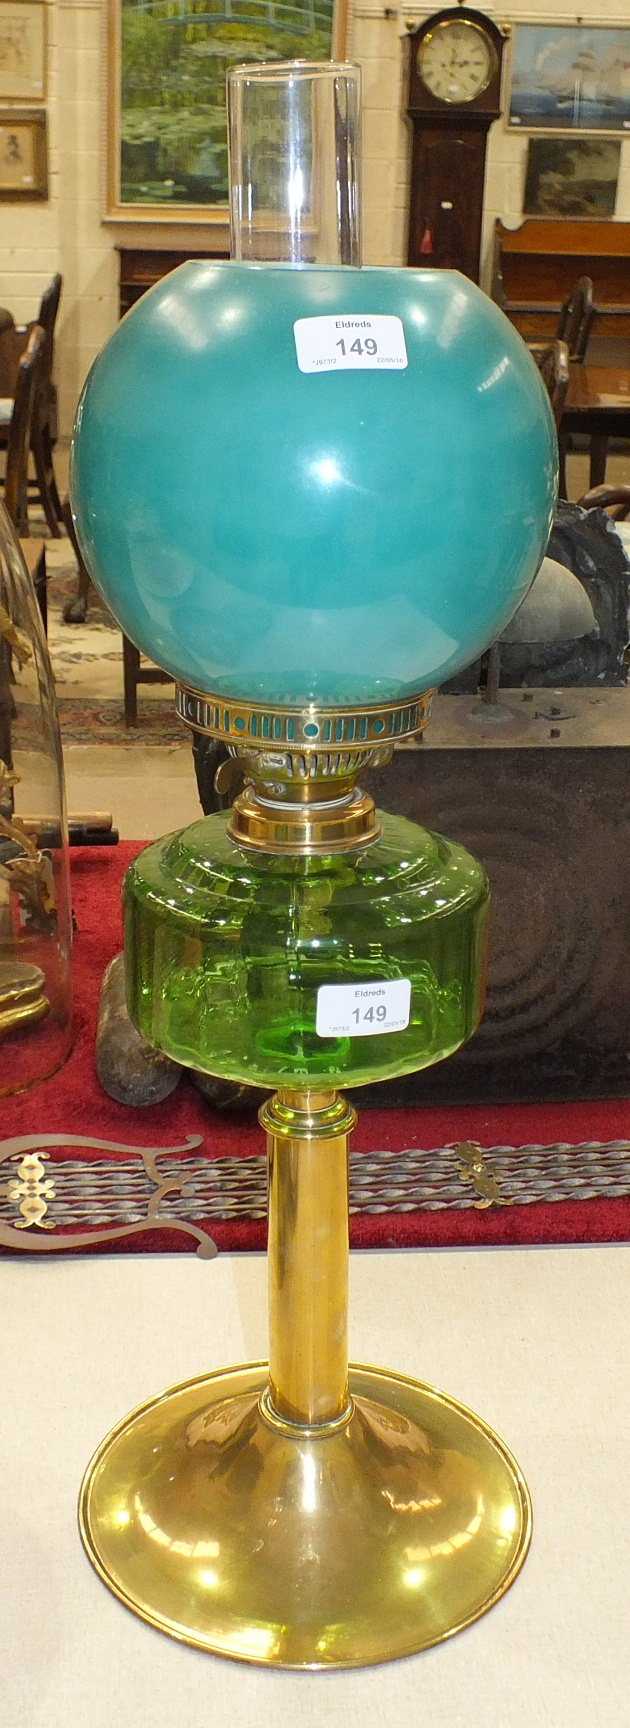 Lot 149 - A late-19th/early-20th century oil lamp, the green glass reservoir on brass column and circular